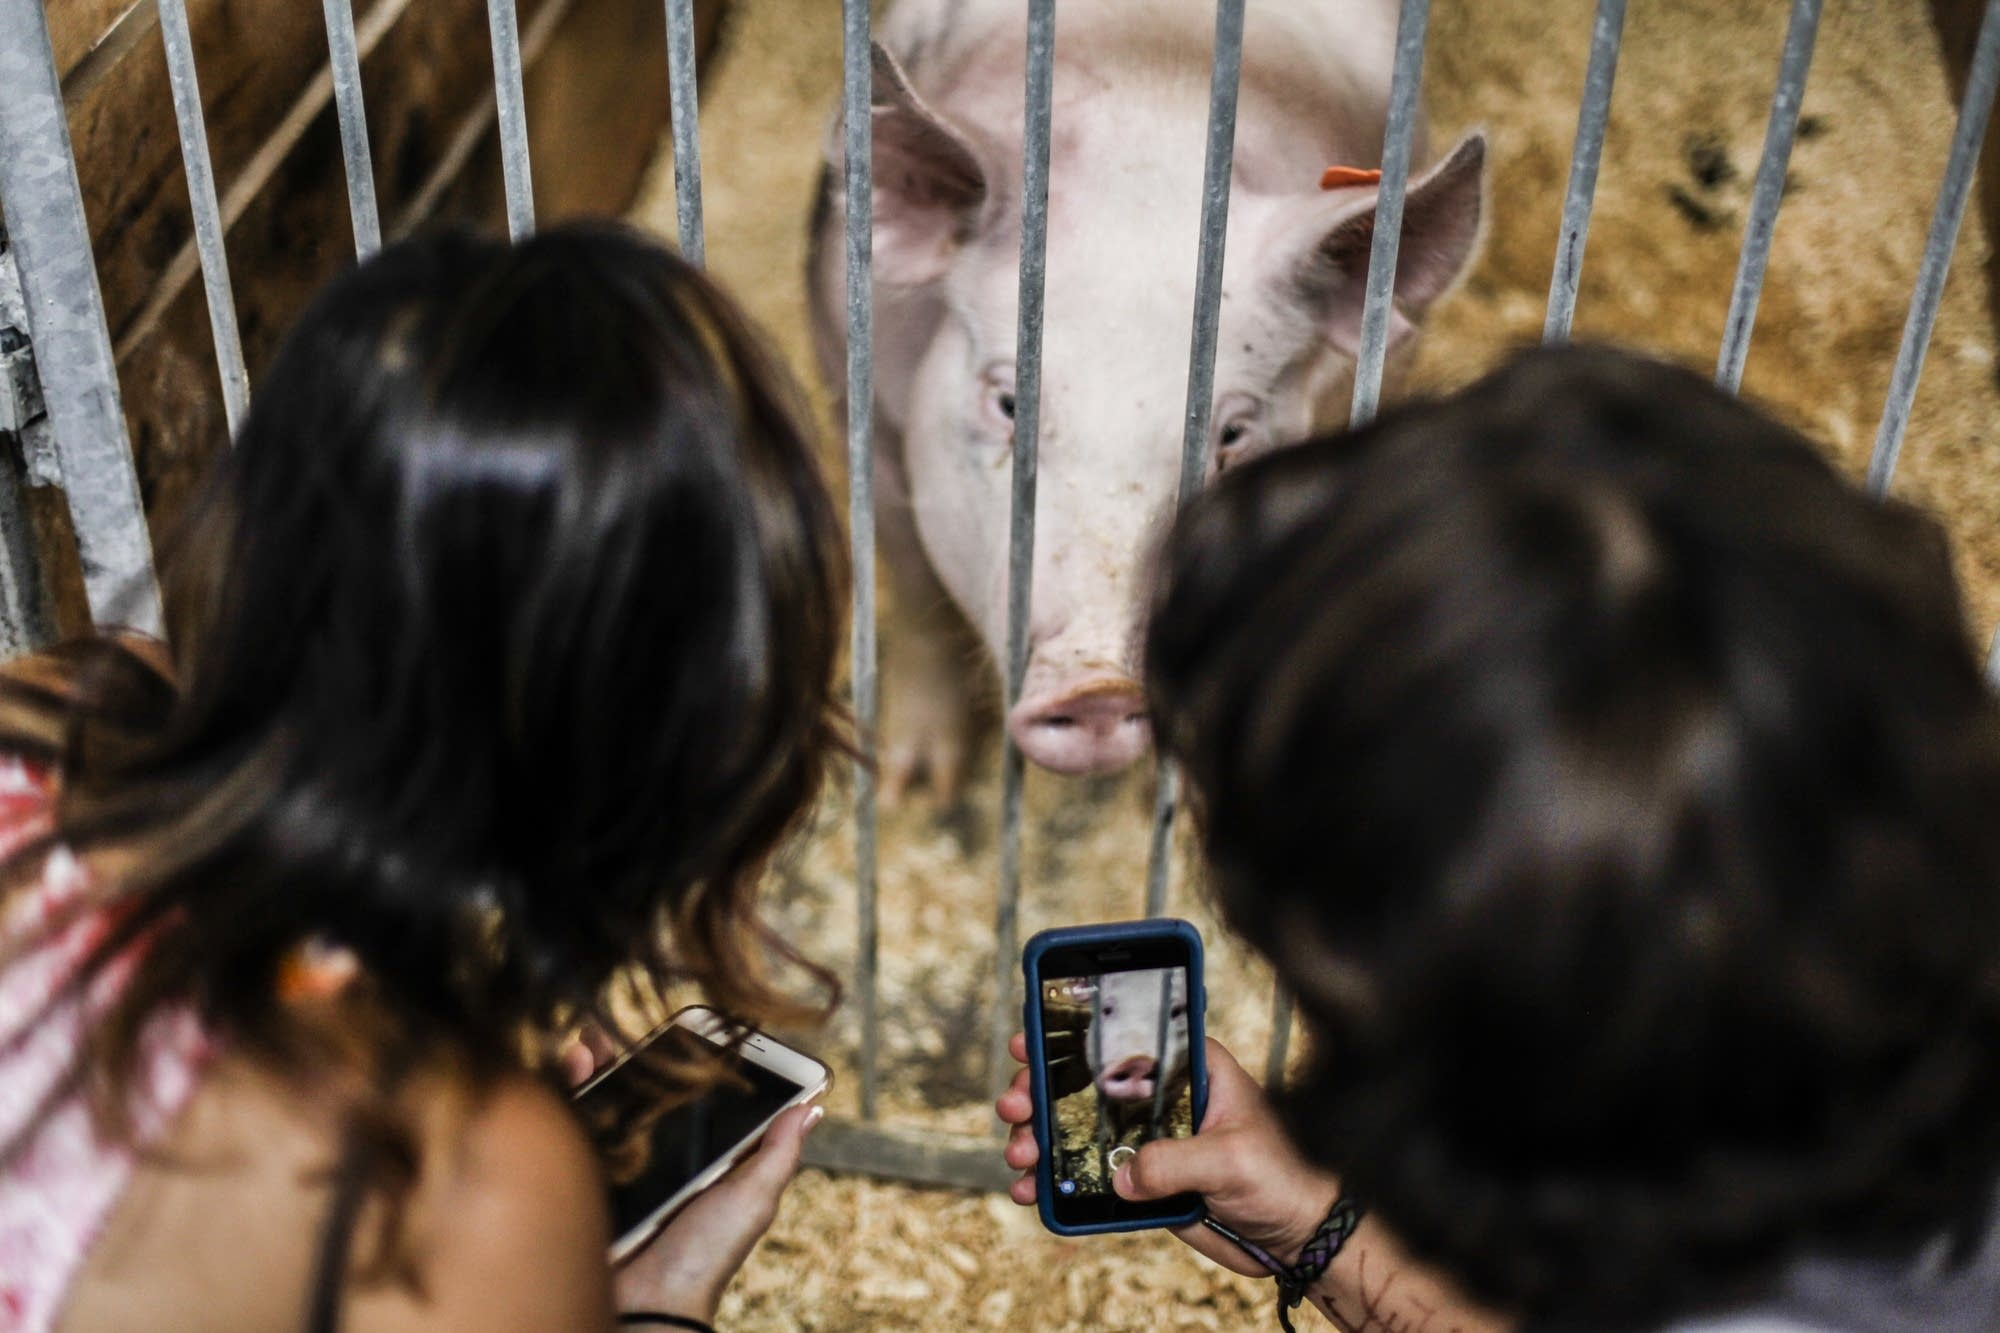 Pigs on snapchat and on camera.